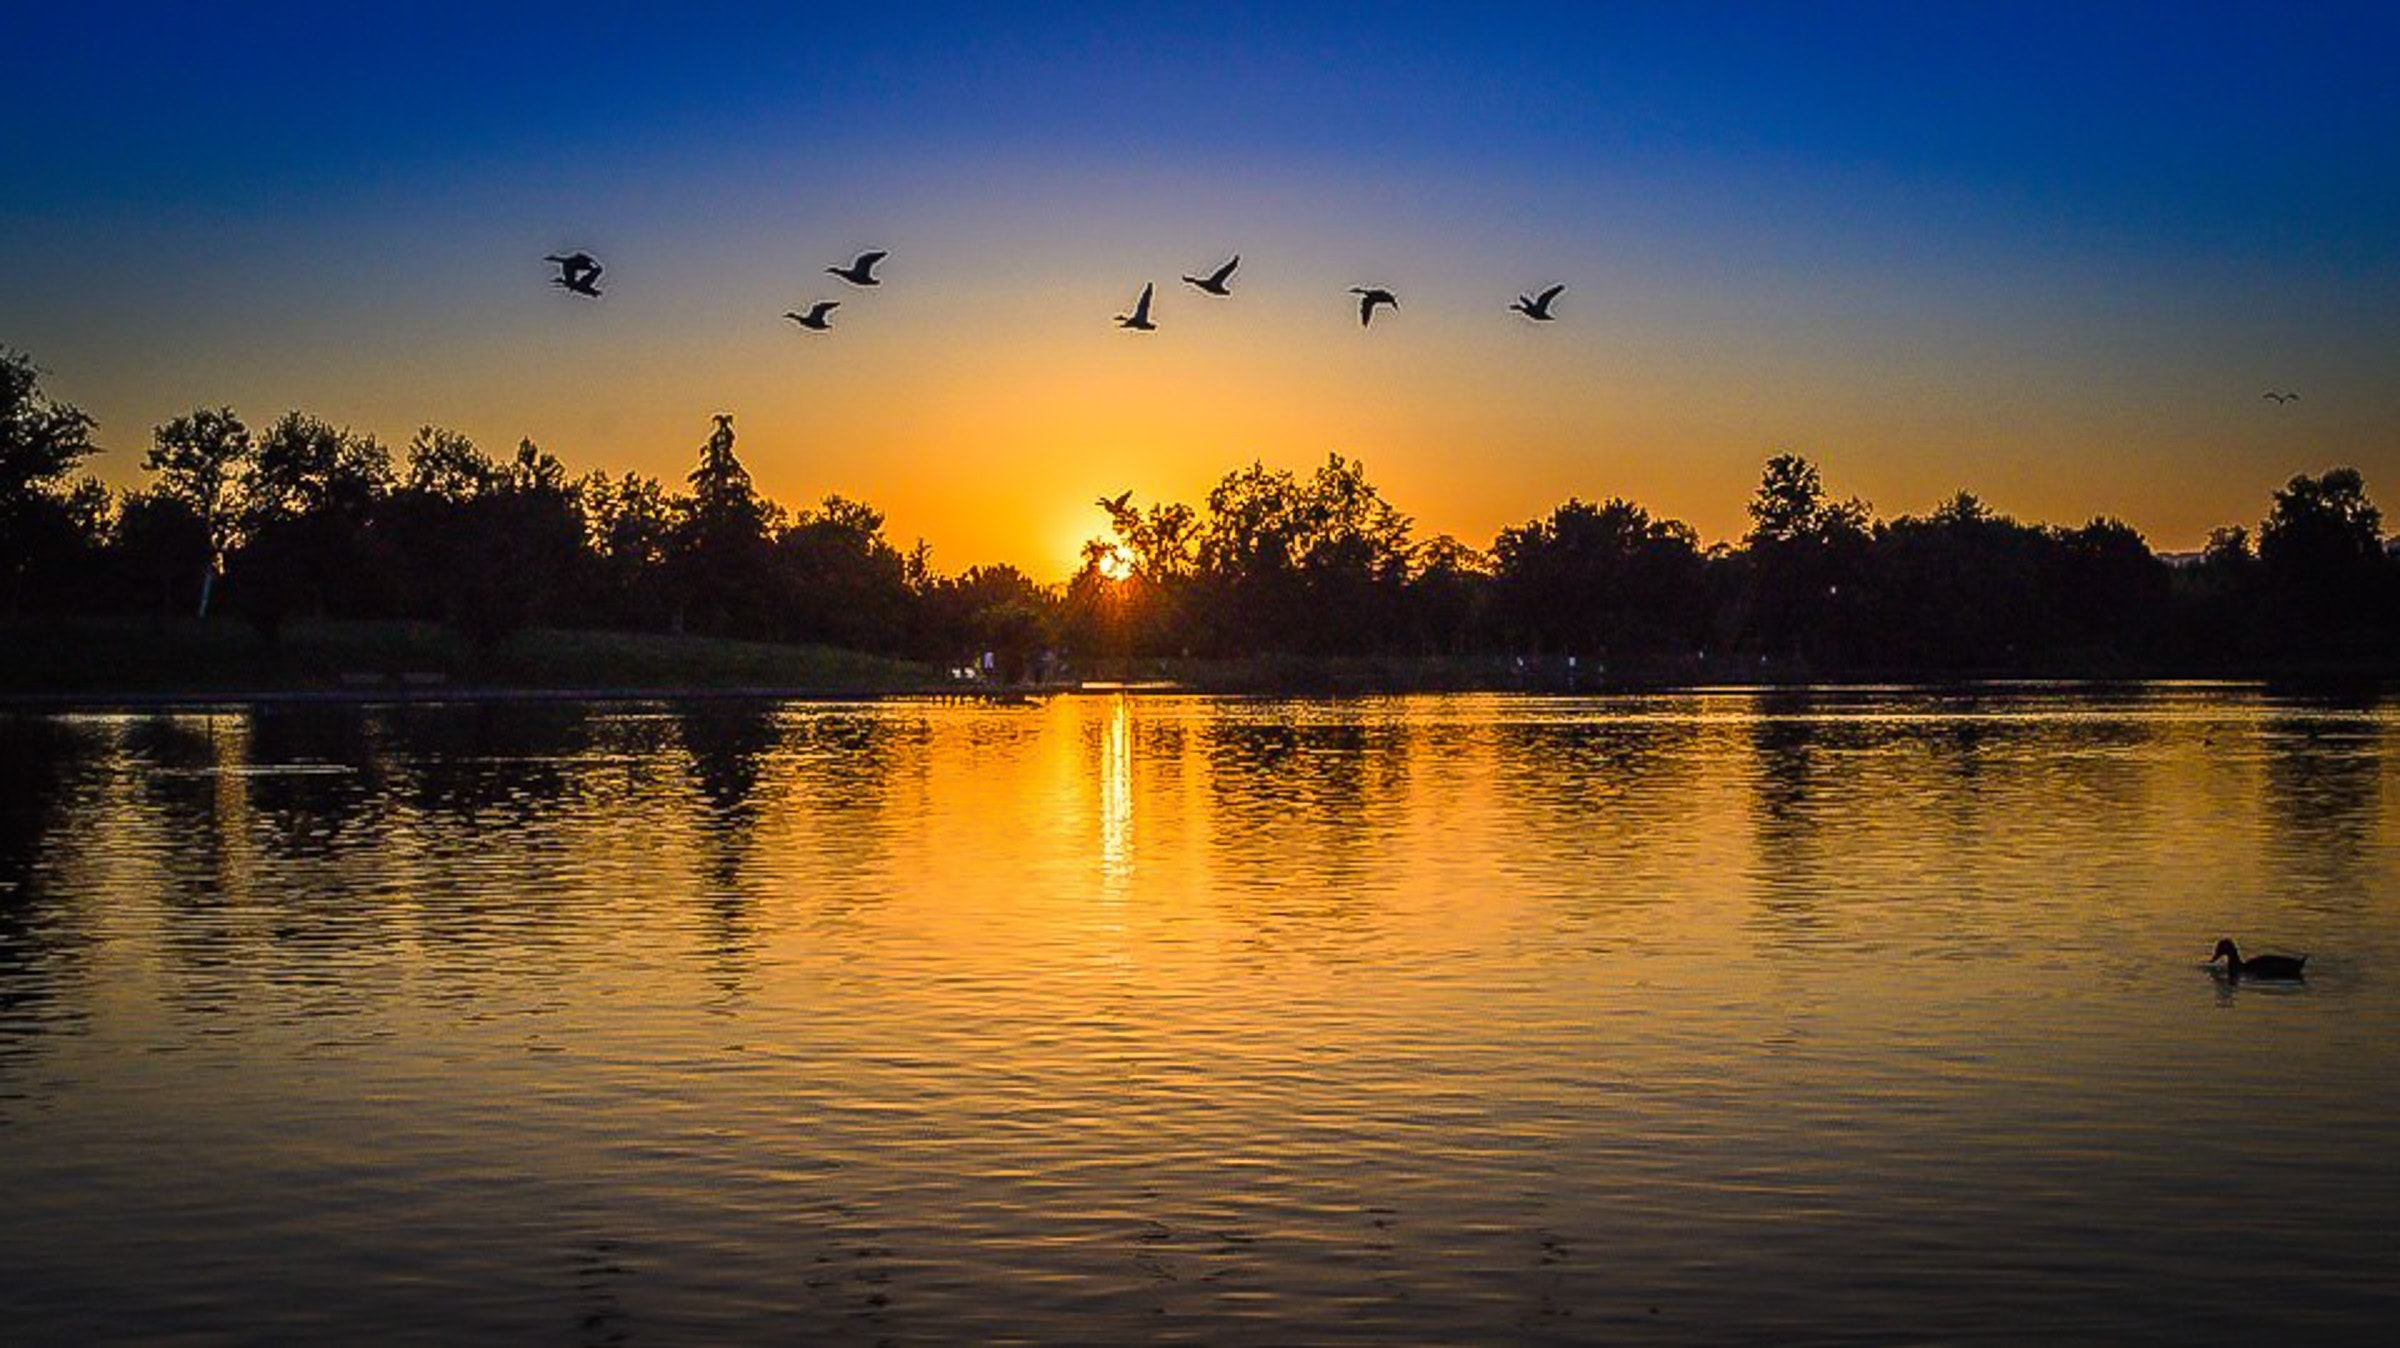 Silhouette of forest with birds flying above body of water during sunset photo